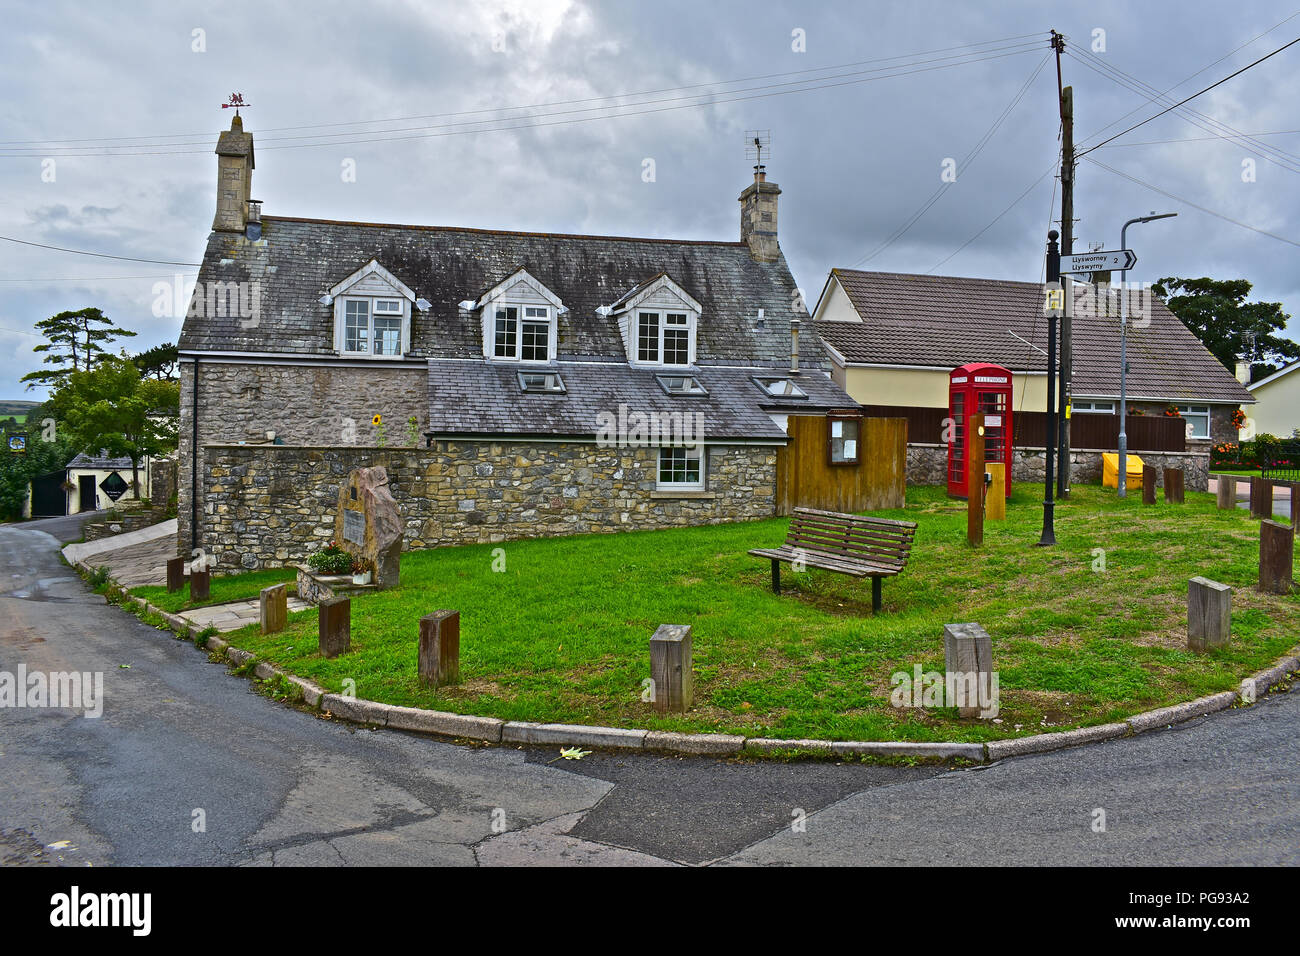 The 'green' in the middle of Colwinston in the Vale of Glamorgan S.Wales. Featuring old red telephone kiosk, former school building and war memorial. - Stock Image